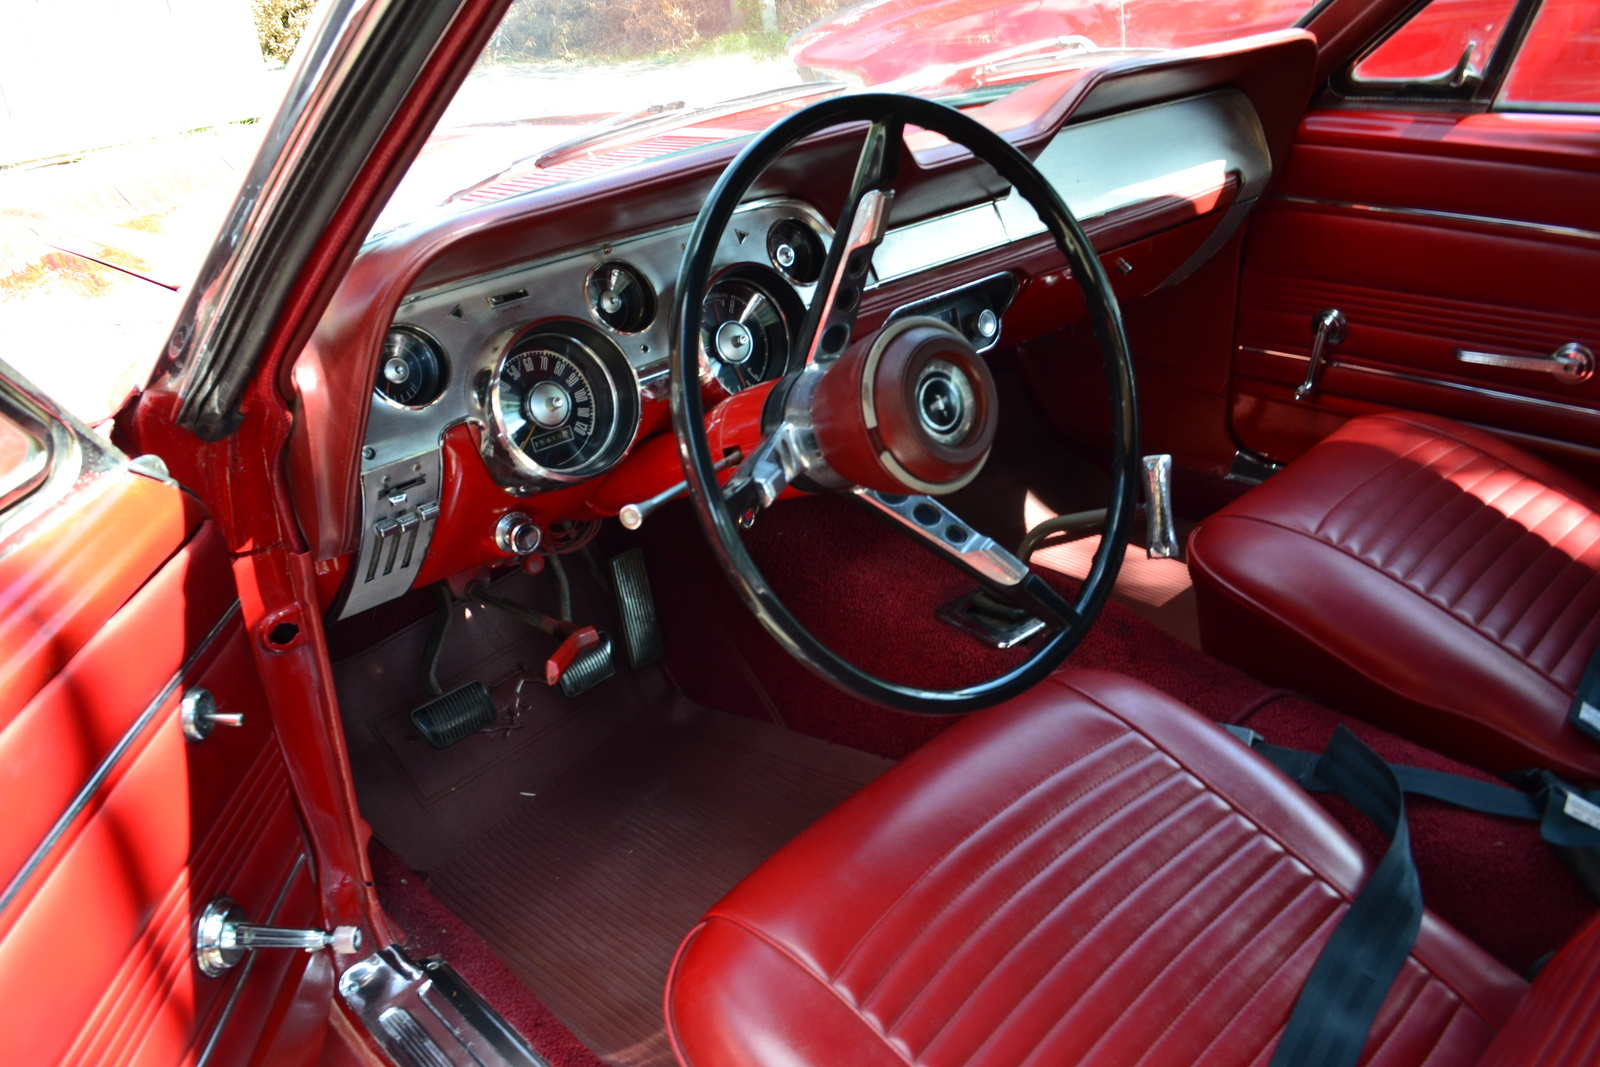 picture of 1967 ford mustang convertible interior - Red 1967 Ford Mustang Coupe